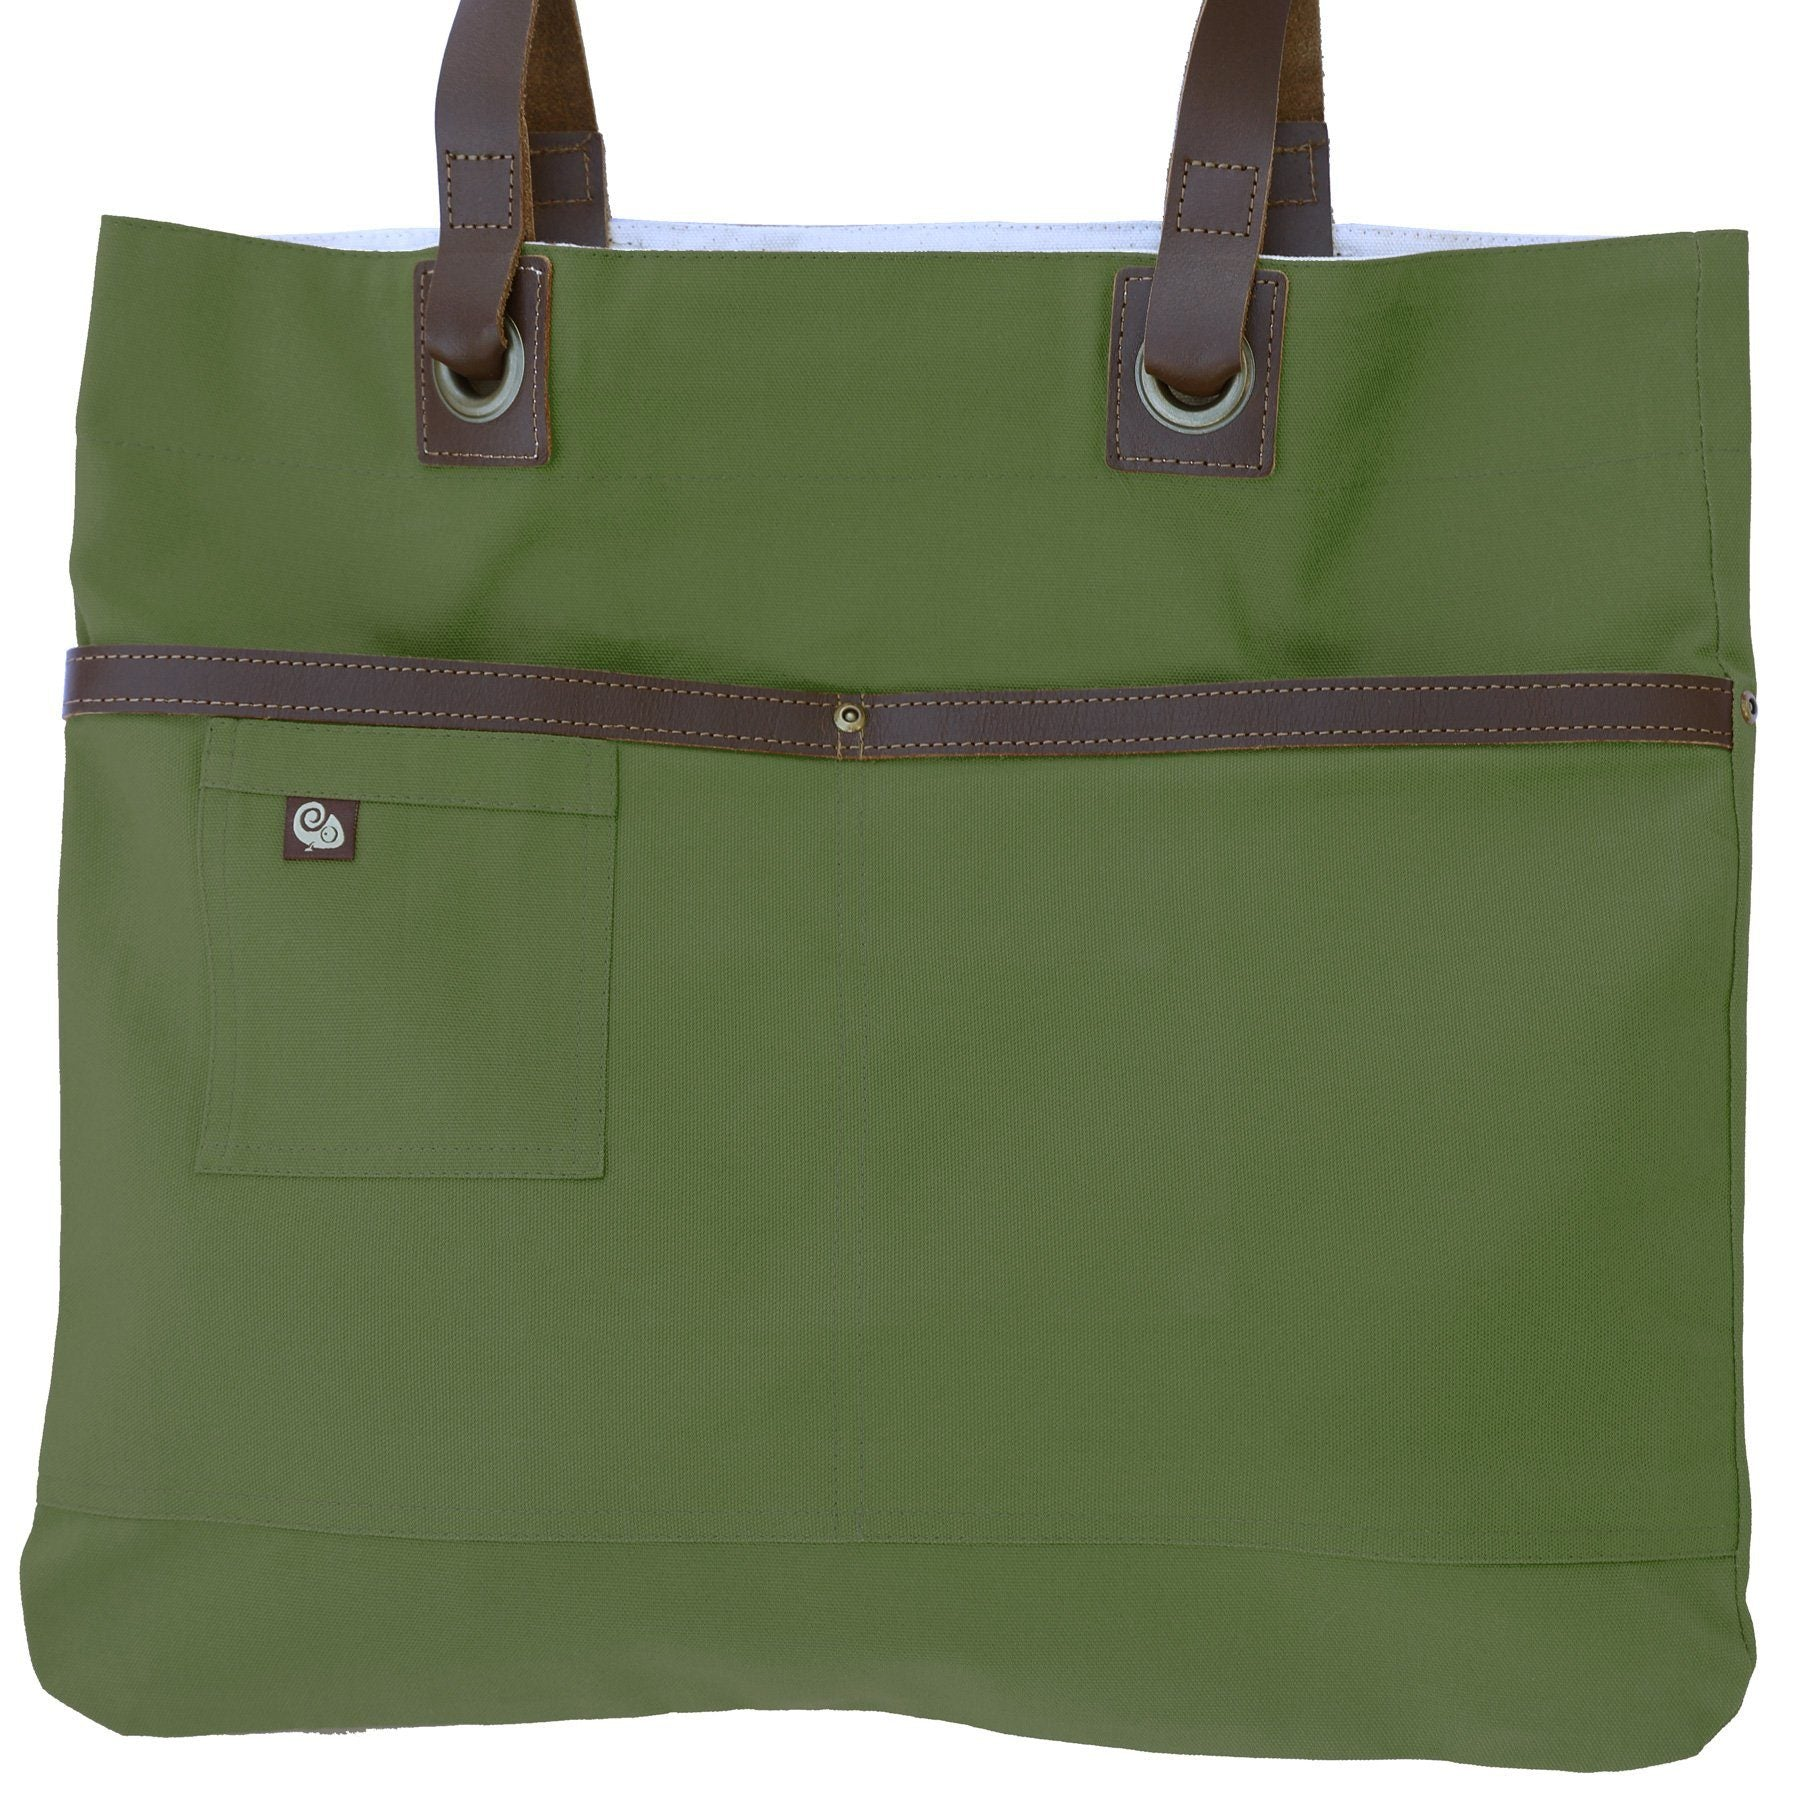 Koda Austell Canvas Bag (Fern)